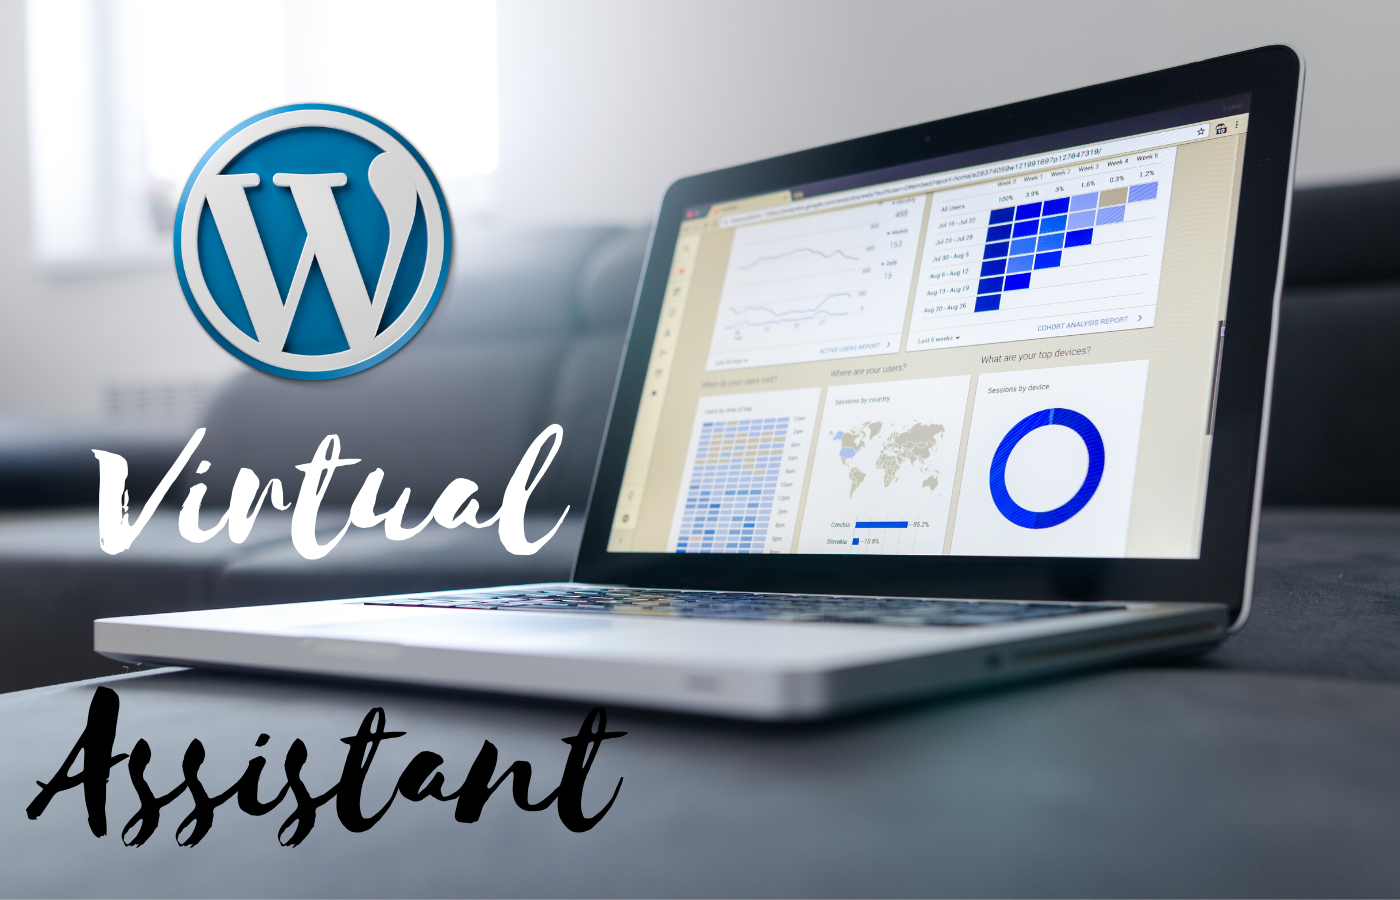 I will be your wordpress virtual assistant for 2 hours